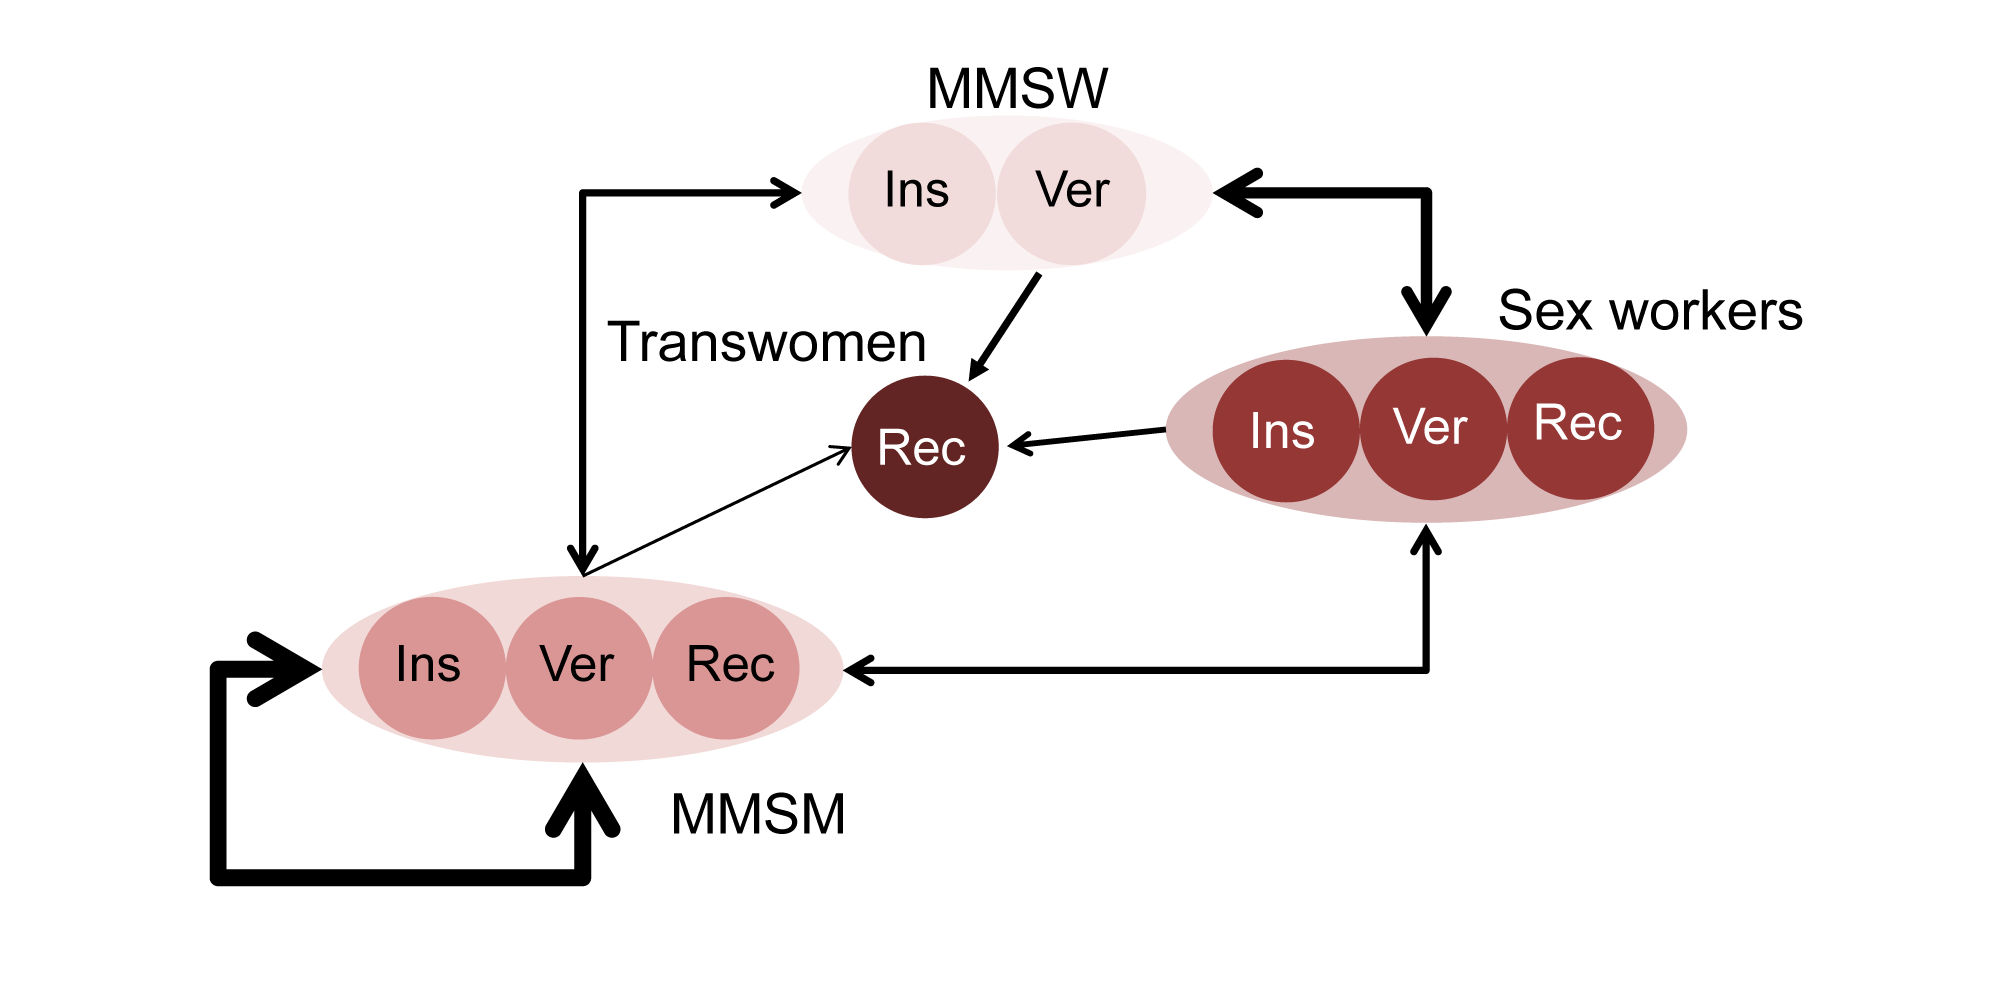 Model representation of sexual mixing and sexual positioning among MSM and transwomen.